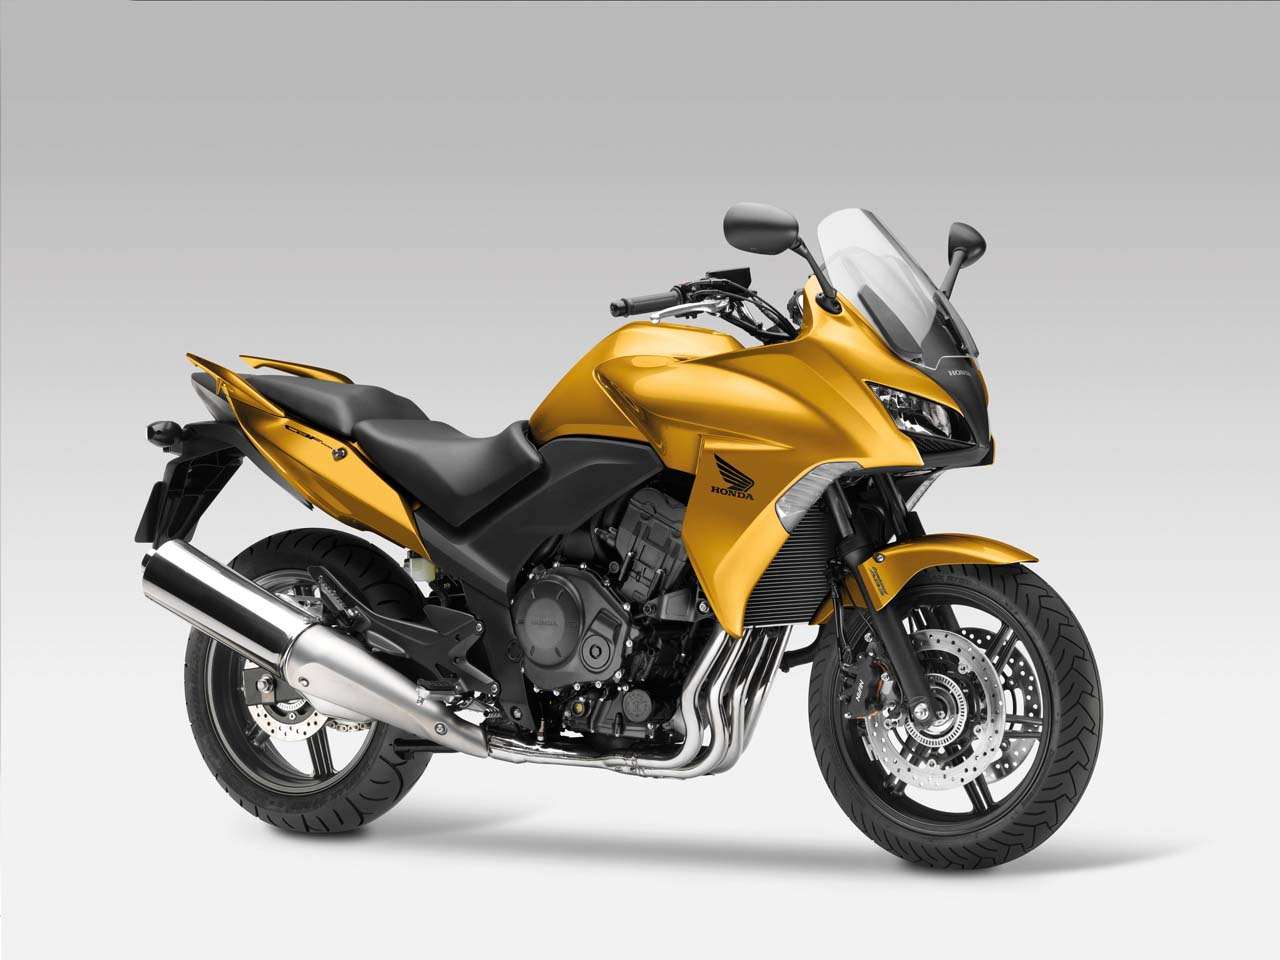 hero honda cbf 1000 wallpapers hero honda bike wallpapers. Black Bedroom Furniture Sets. Home Design Ideas